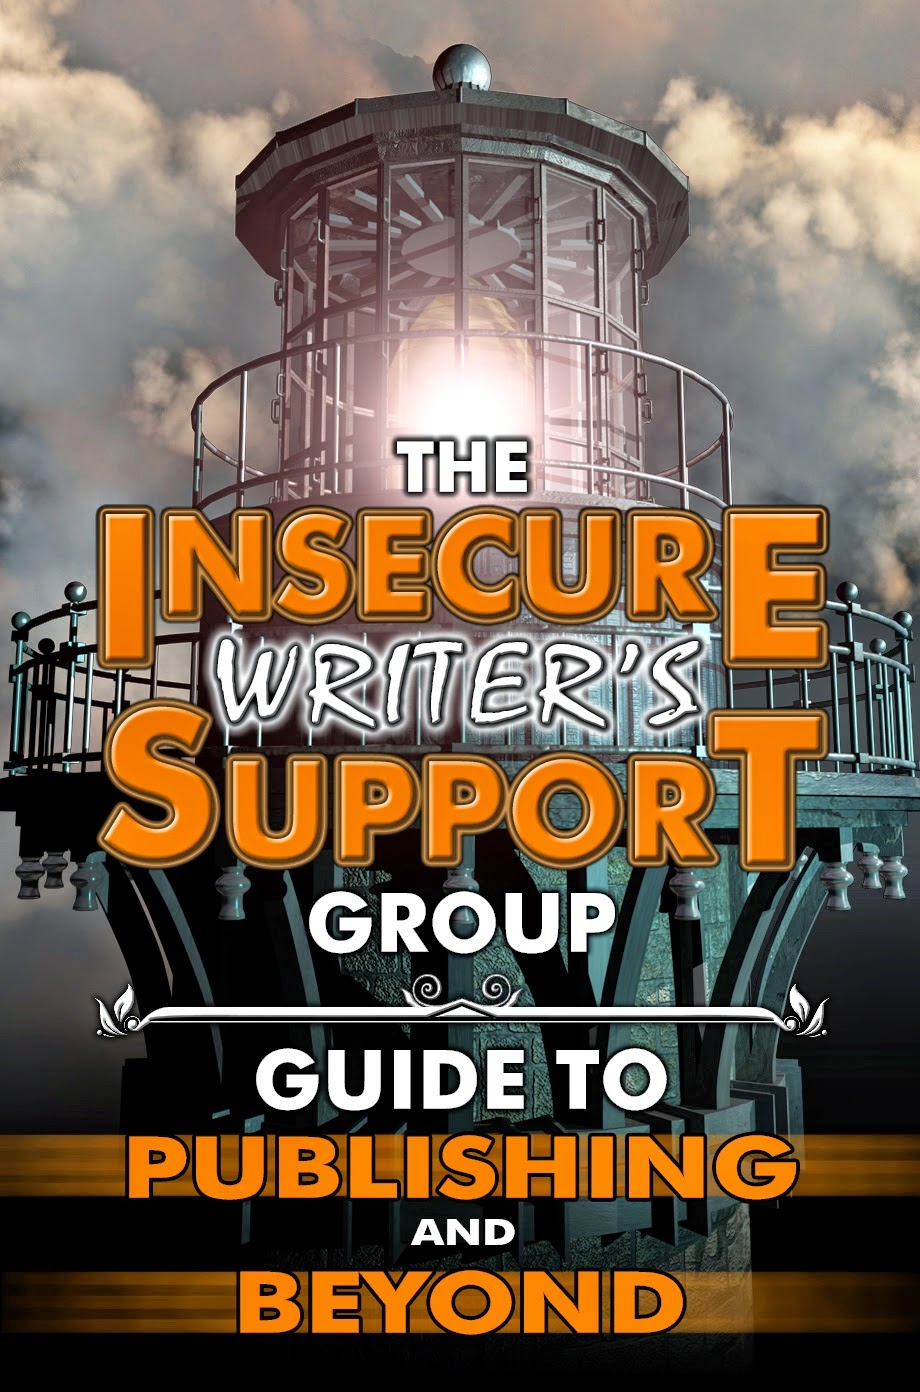 http://alexjcavanaugh.blogspot.se/2014/09/insecure-writers-support-group.html